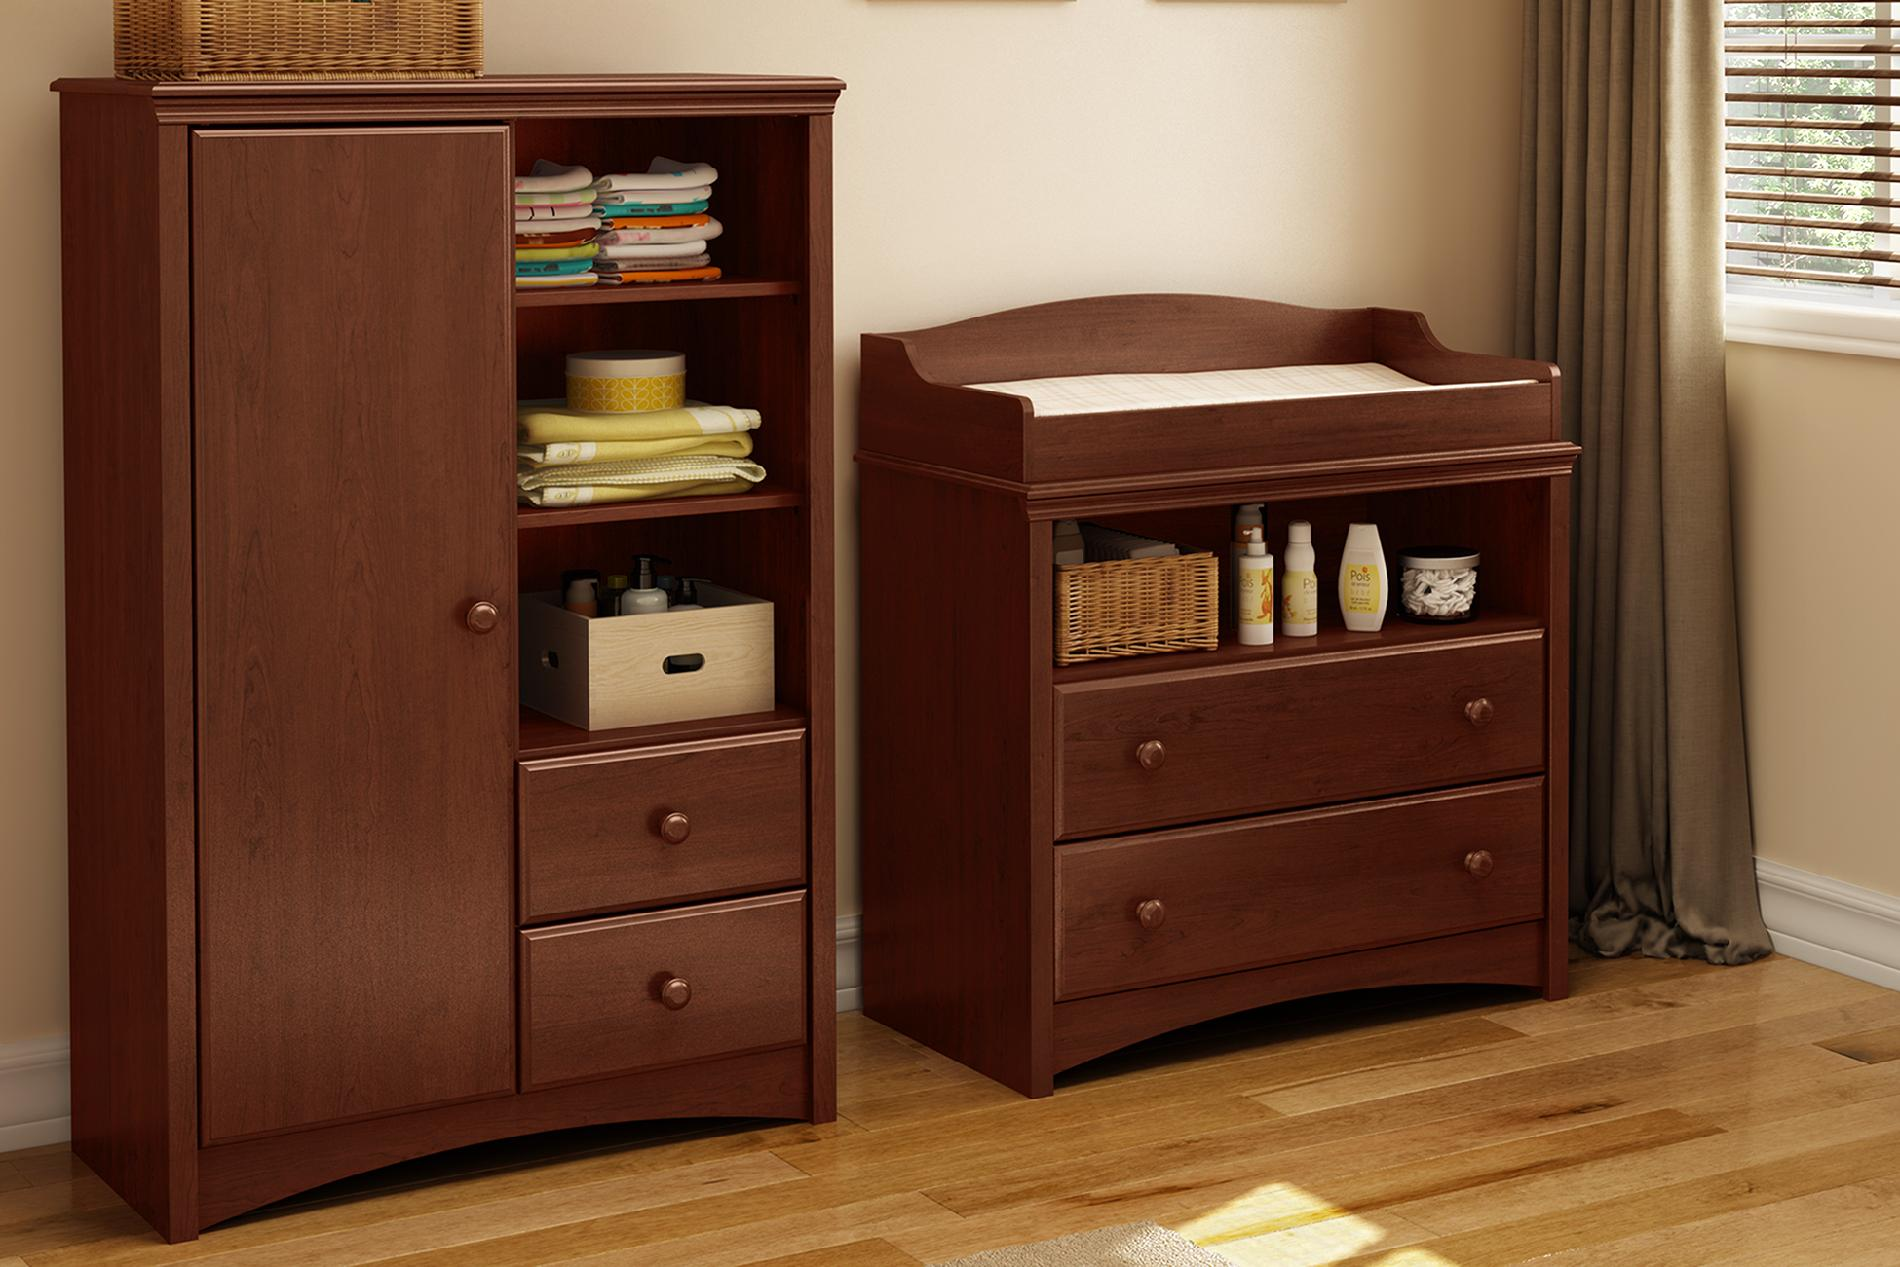 Sweet Morning Changing Table and Armoire with Drawers, Royal Cherry